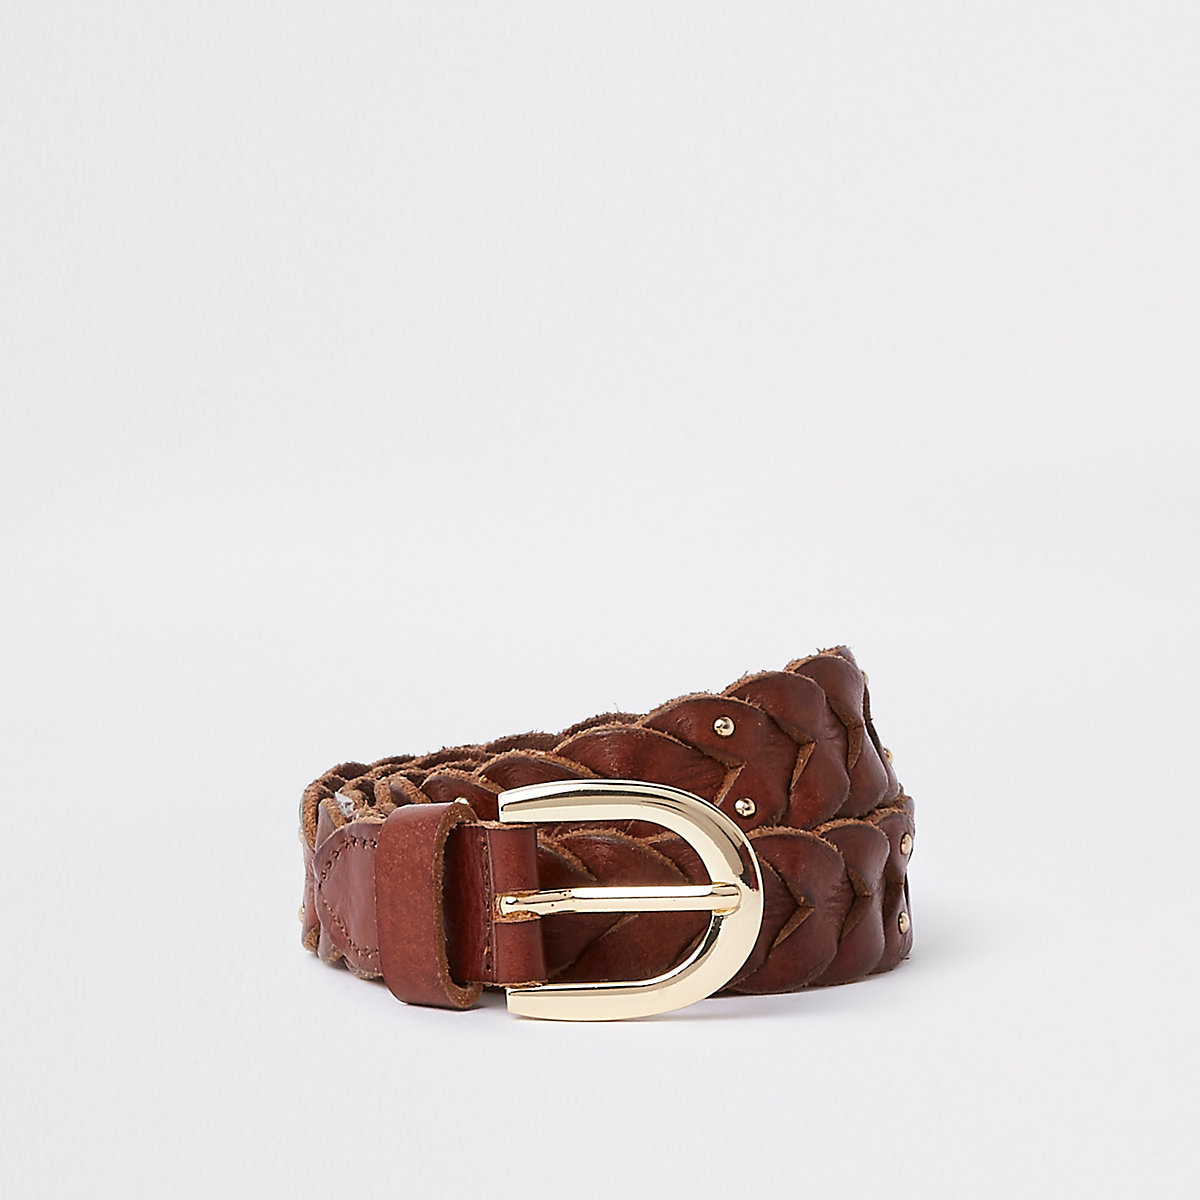 Brown leather stud plaited jeans belt